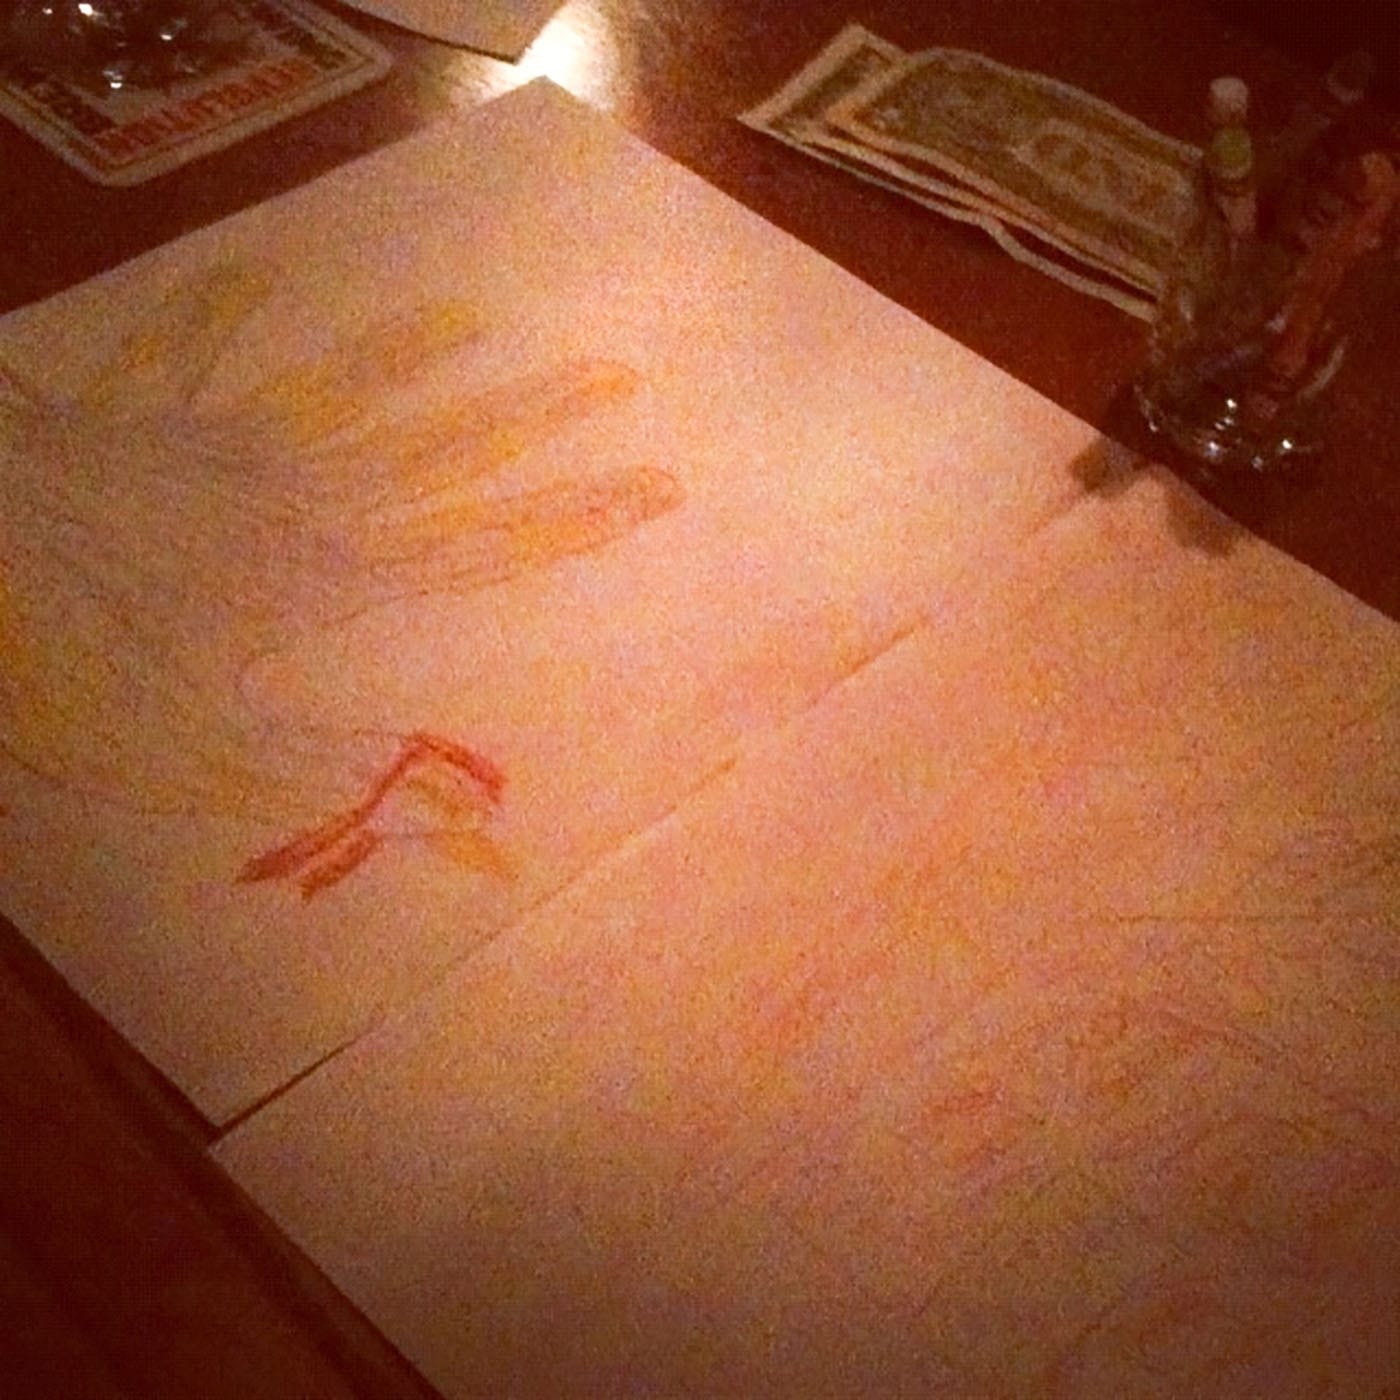 Coloring at the Four Moon bar in Chicago, Illinois